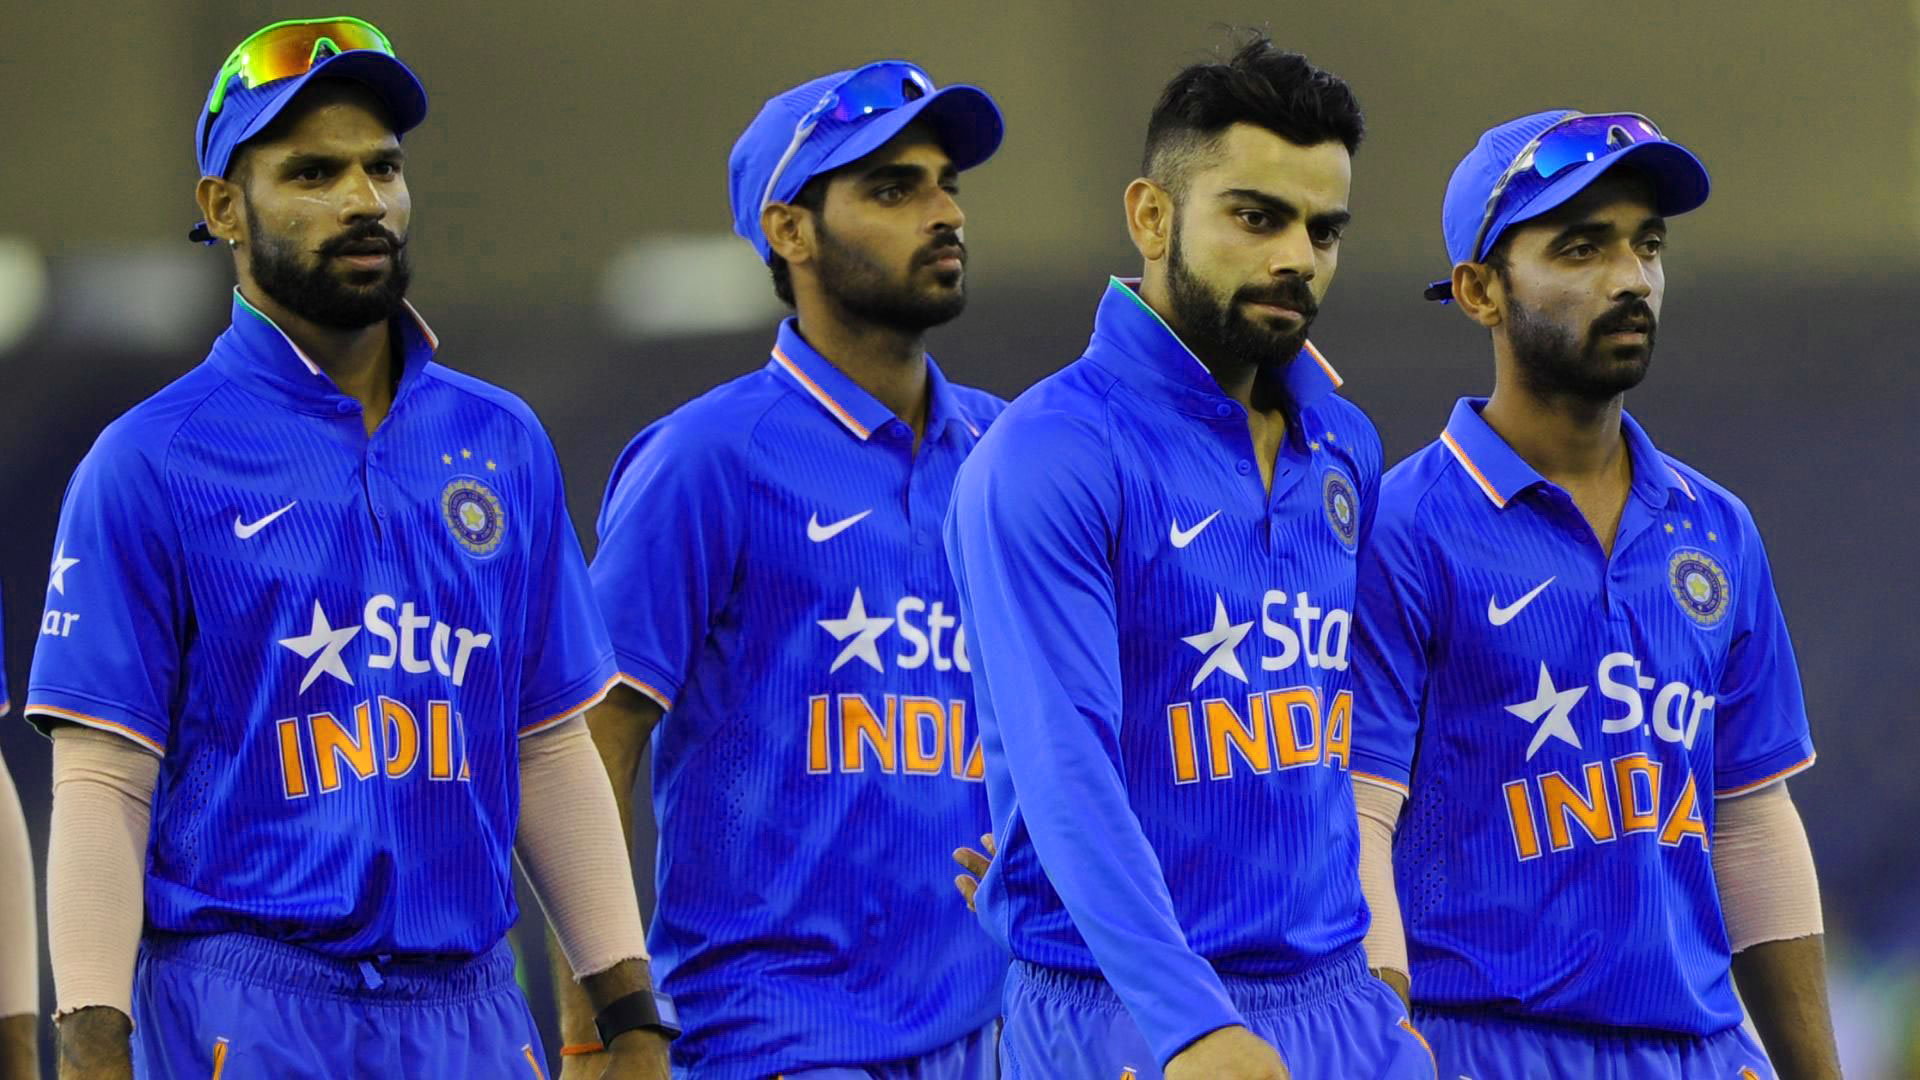 INDIAN CRICKET TEAM PLAYER IMAGES PICTURES DOWNLOAD